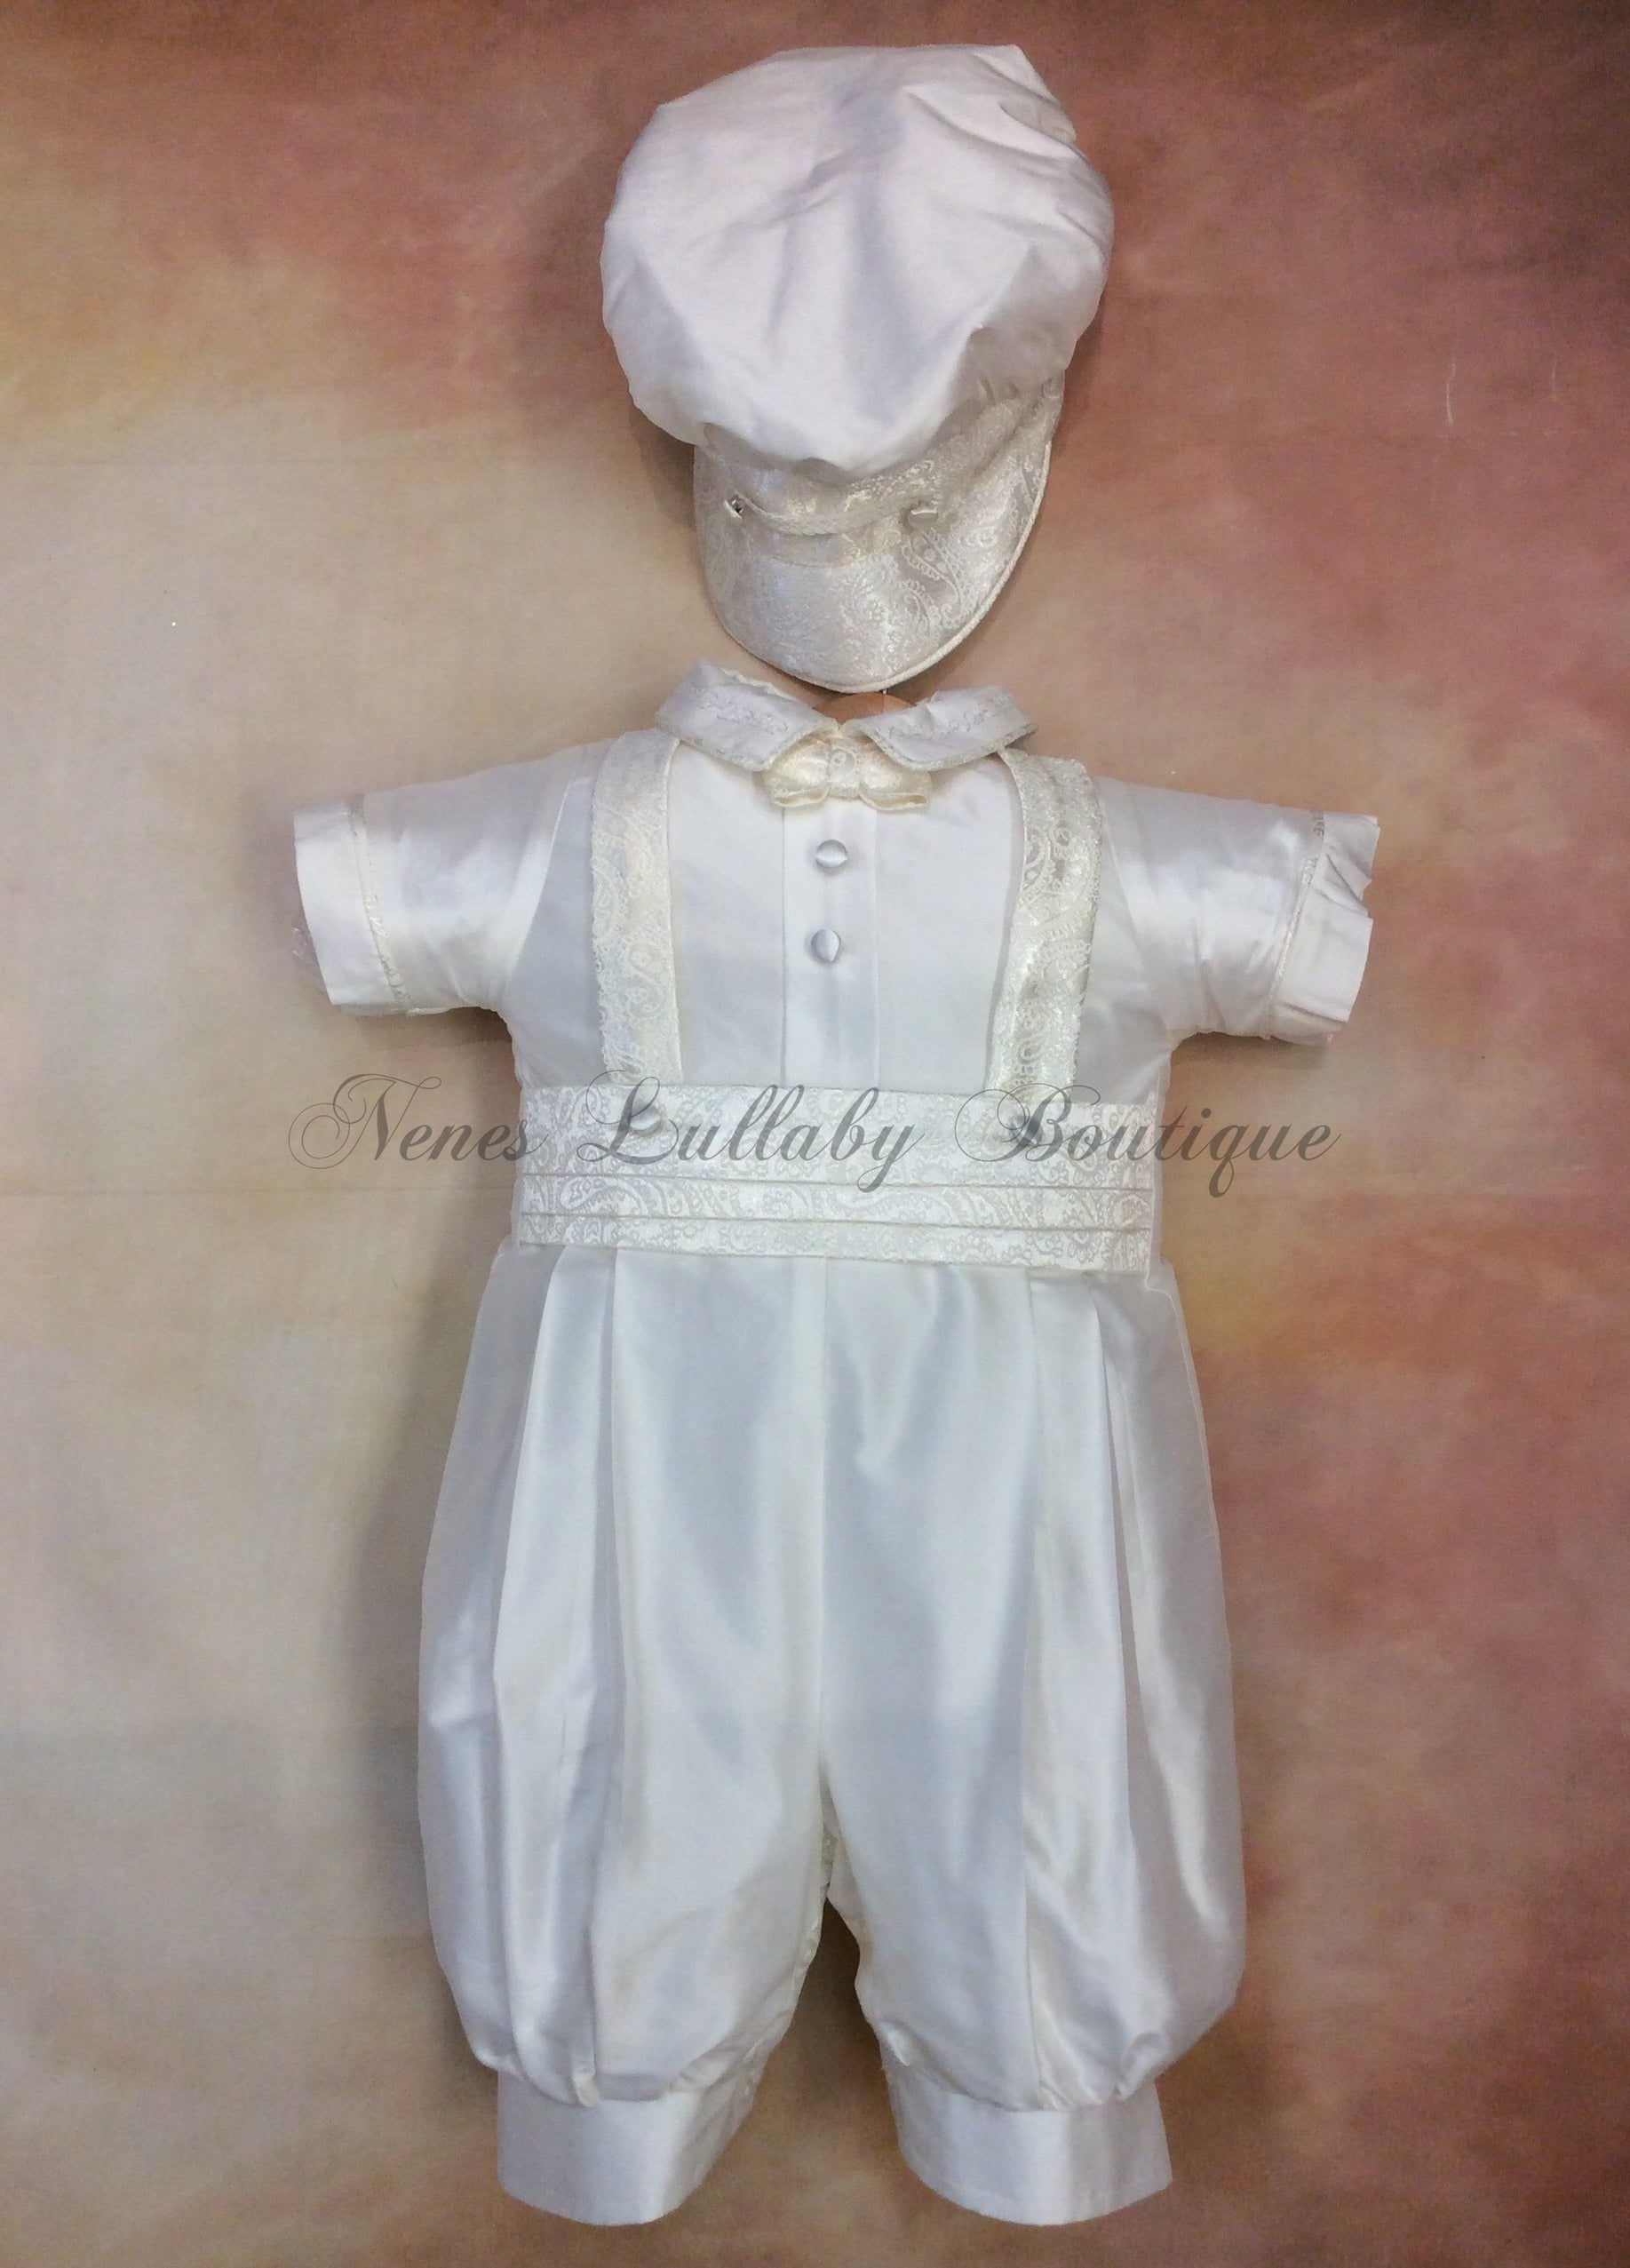 Renzo_sk_ss_kn Boy White Silk Christening outfit short sleeve, knicker pant matching newsboy cap - Nenes Lullaby Boutique Inc